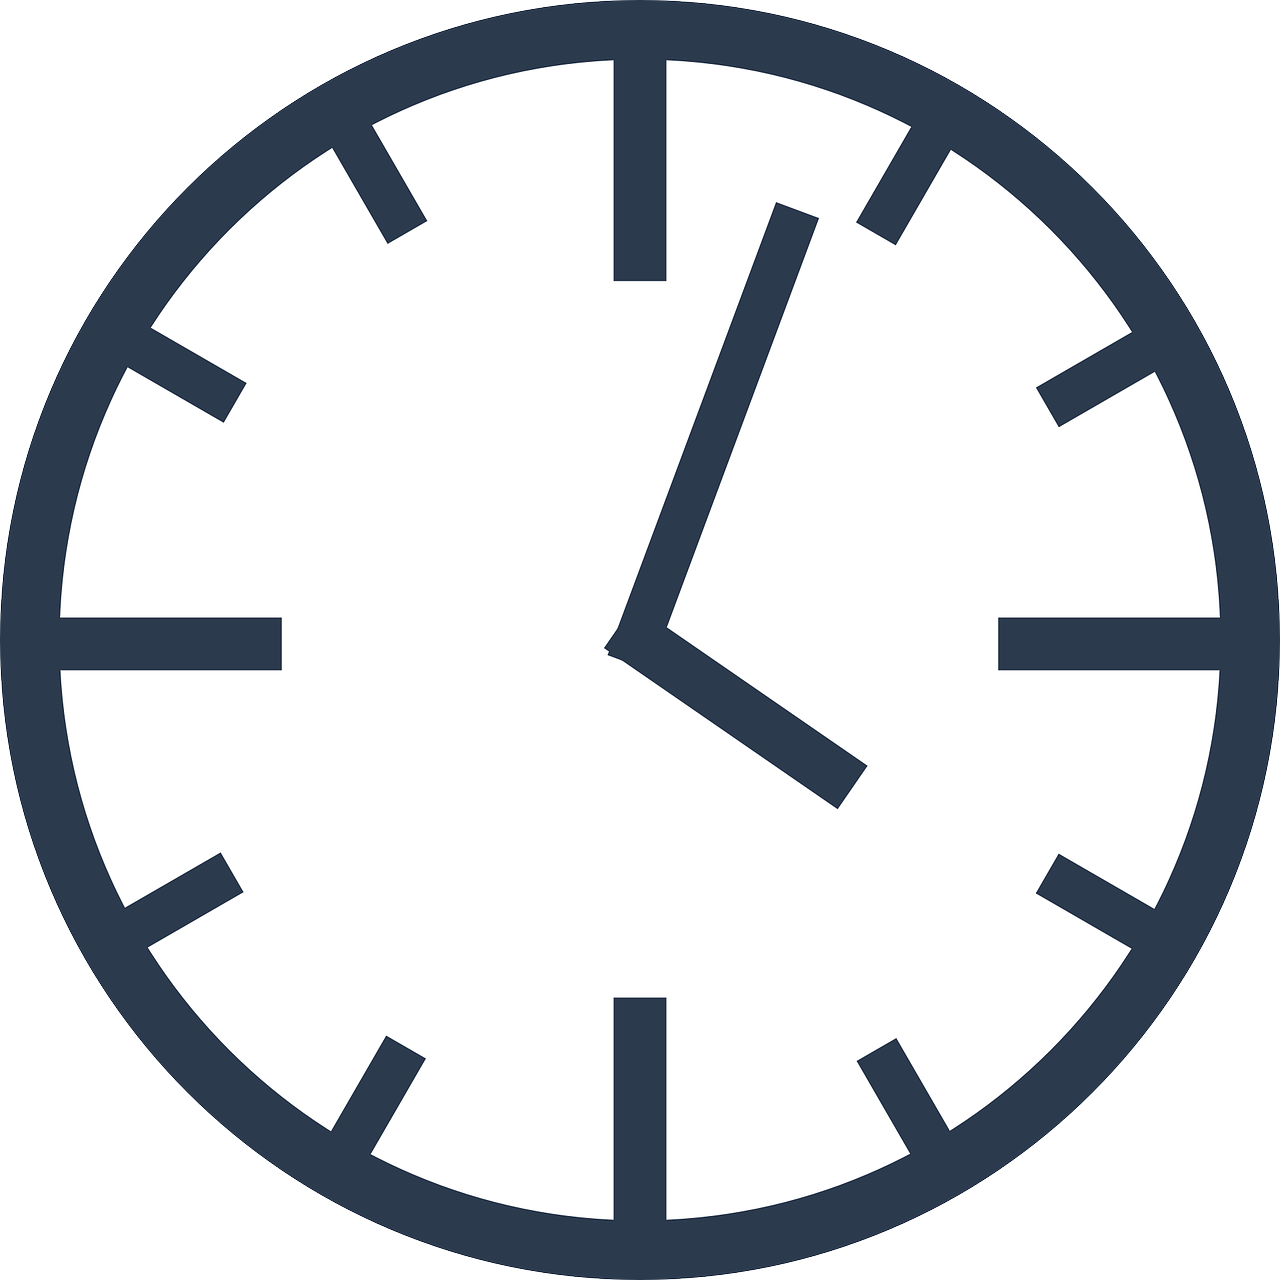 Transparent ten minute clock clipart png library stock Clock Day Hour Measure Minute Png Image - Transparent ... png library stock